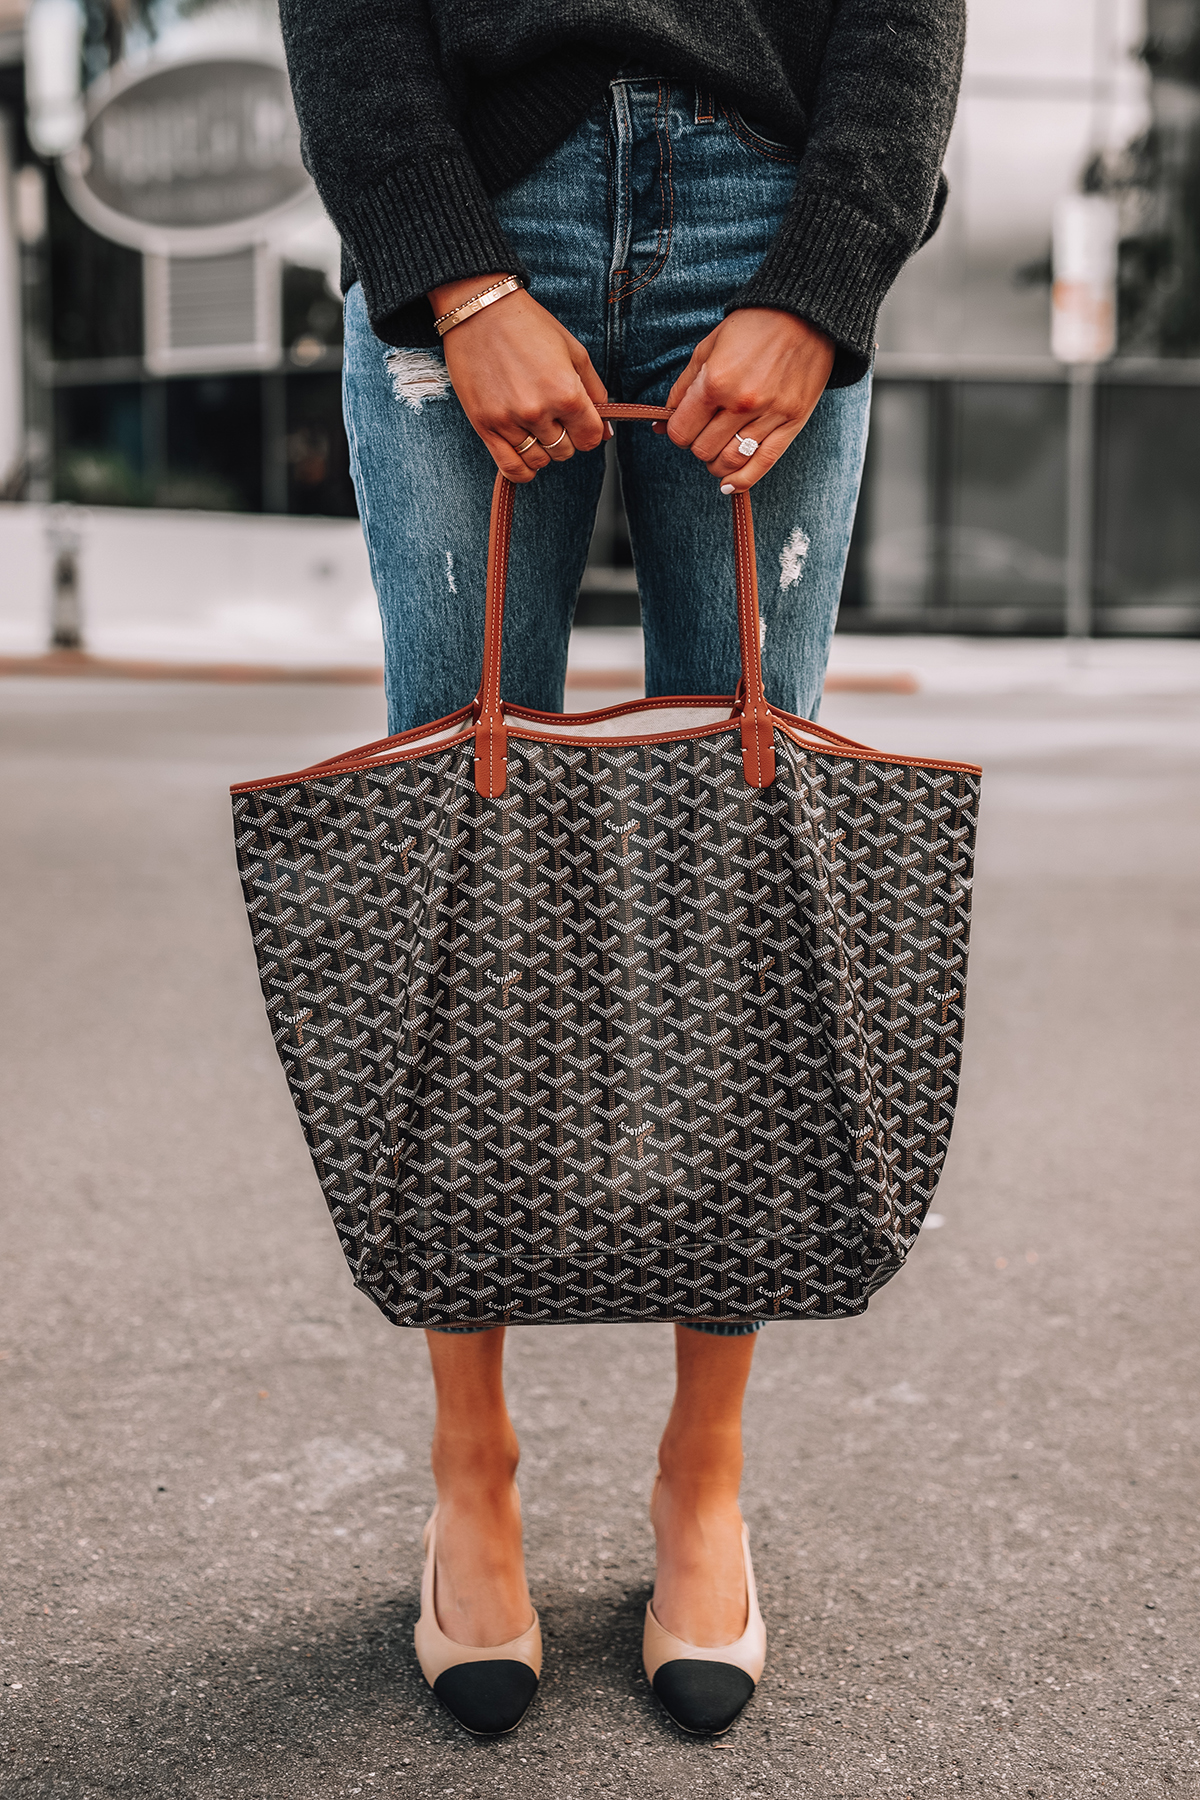 Fashion Jackson Goyard St Louis GM Tote Ripped Jeans Chanel Slingbacks